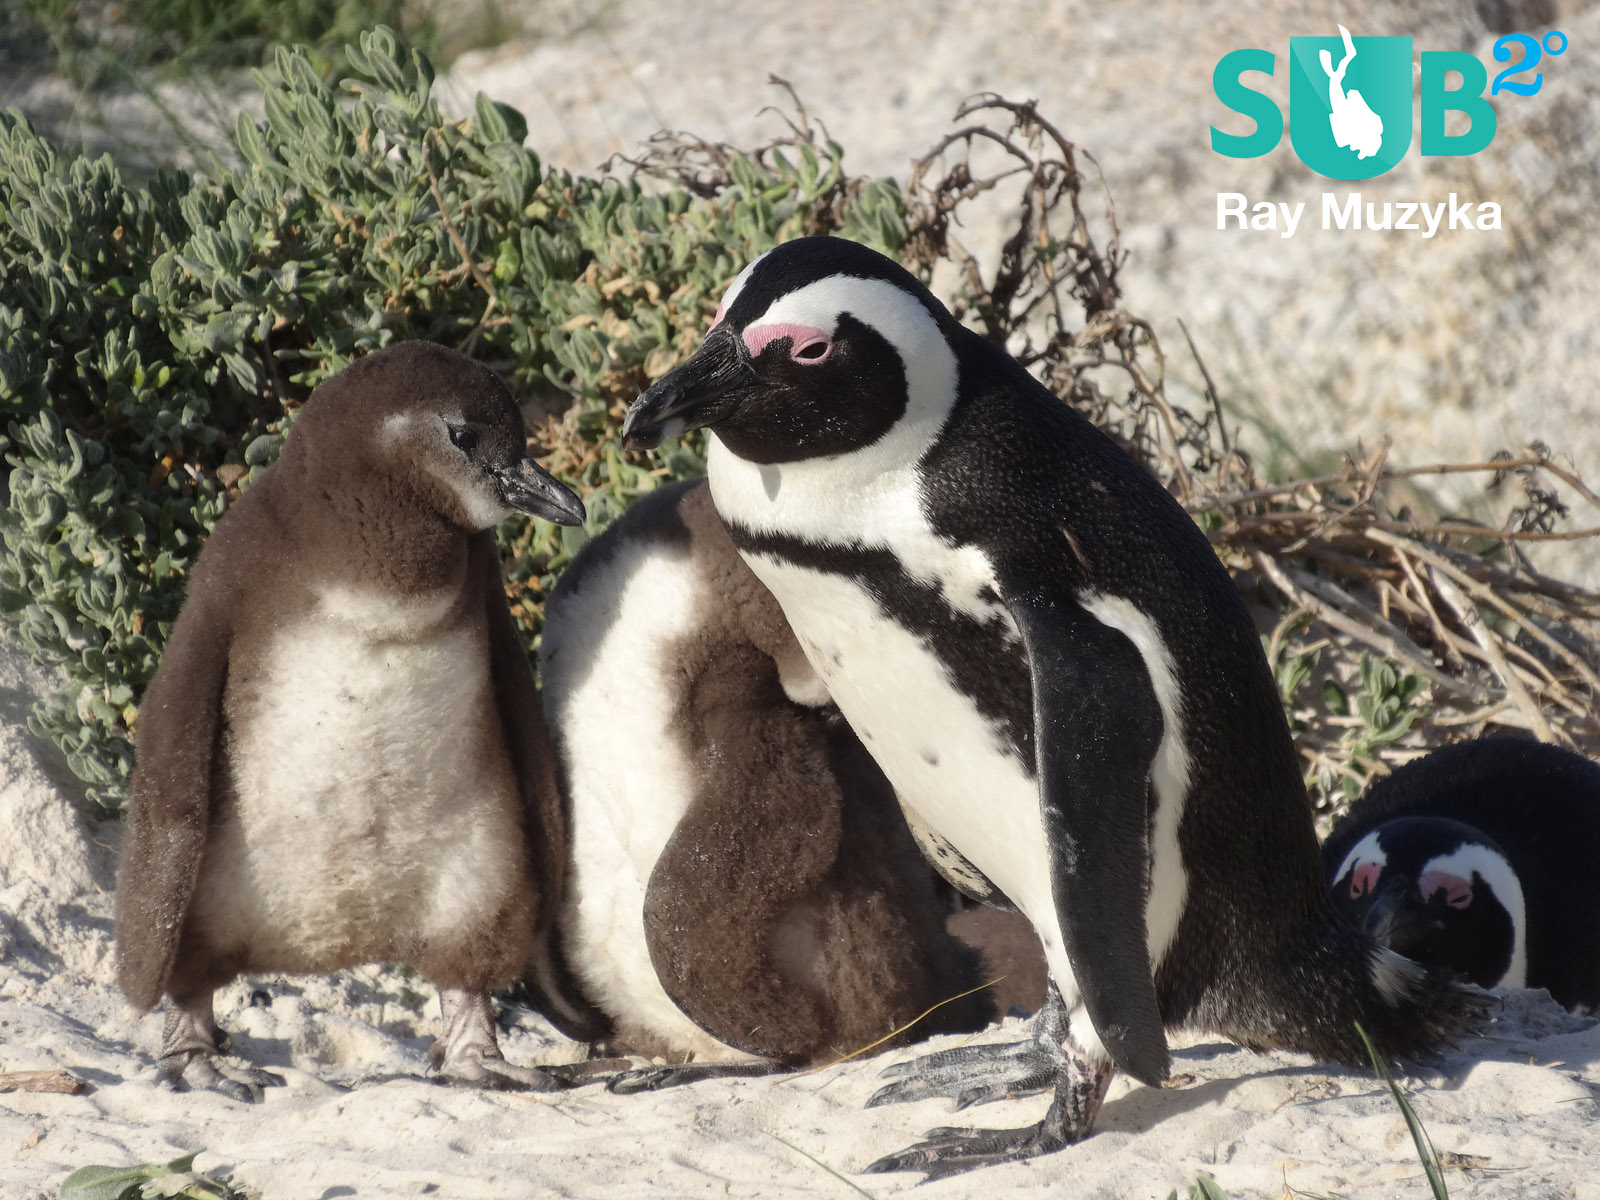 Penguin with two large chicks at nesting site in Boulders Beach, South Africa.